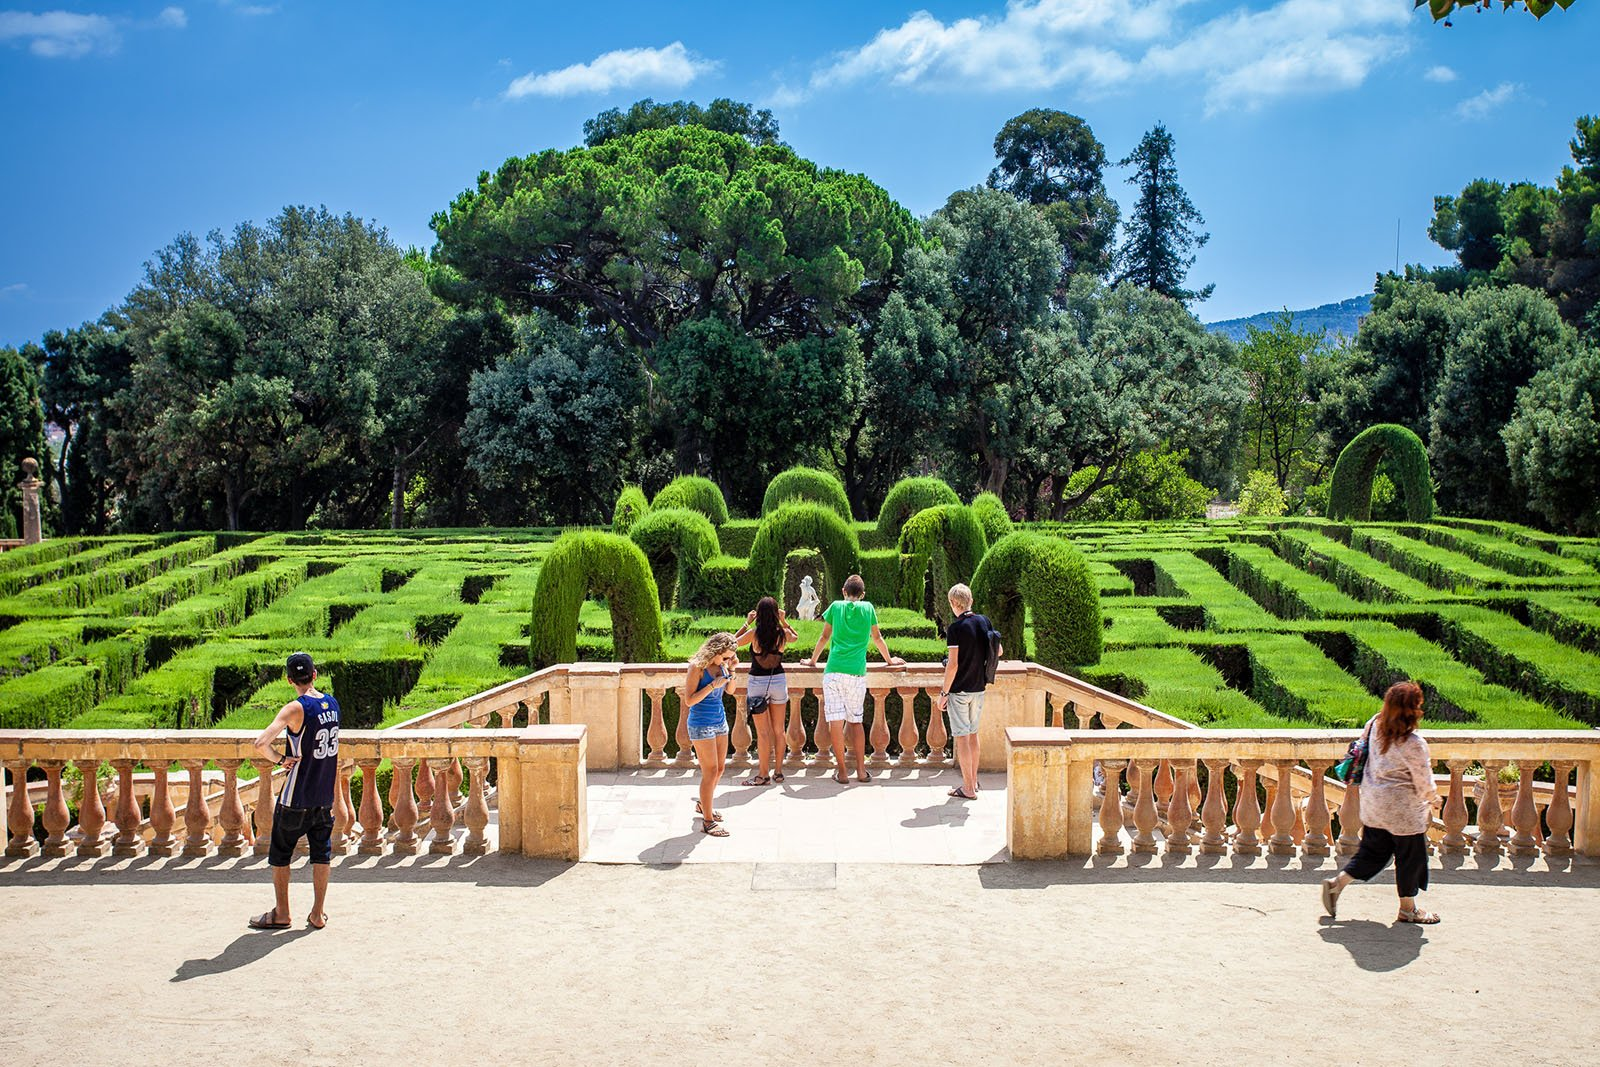 How to escape from the Laberint d'Horta in Barcelona